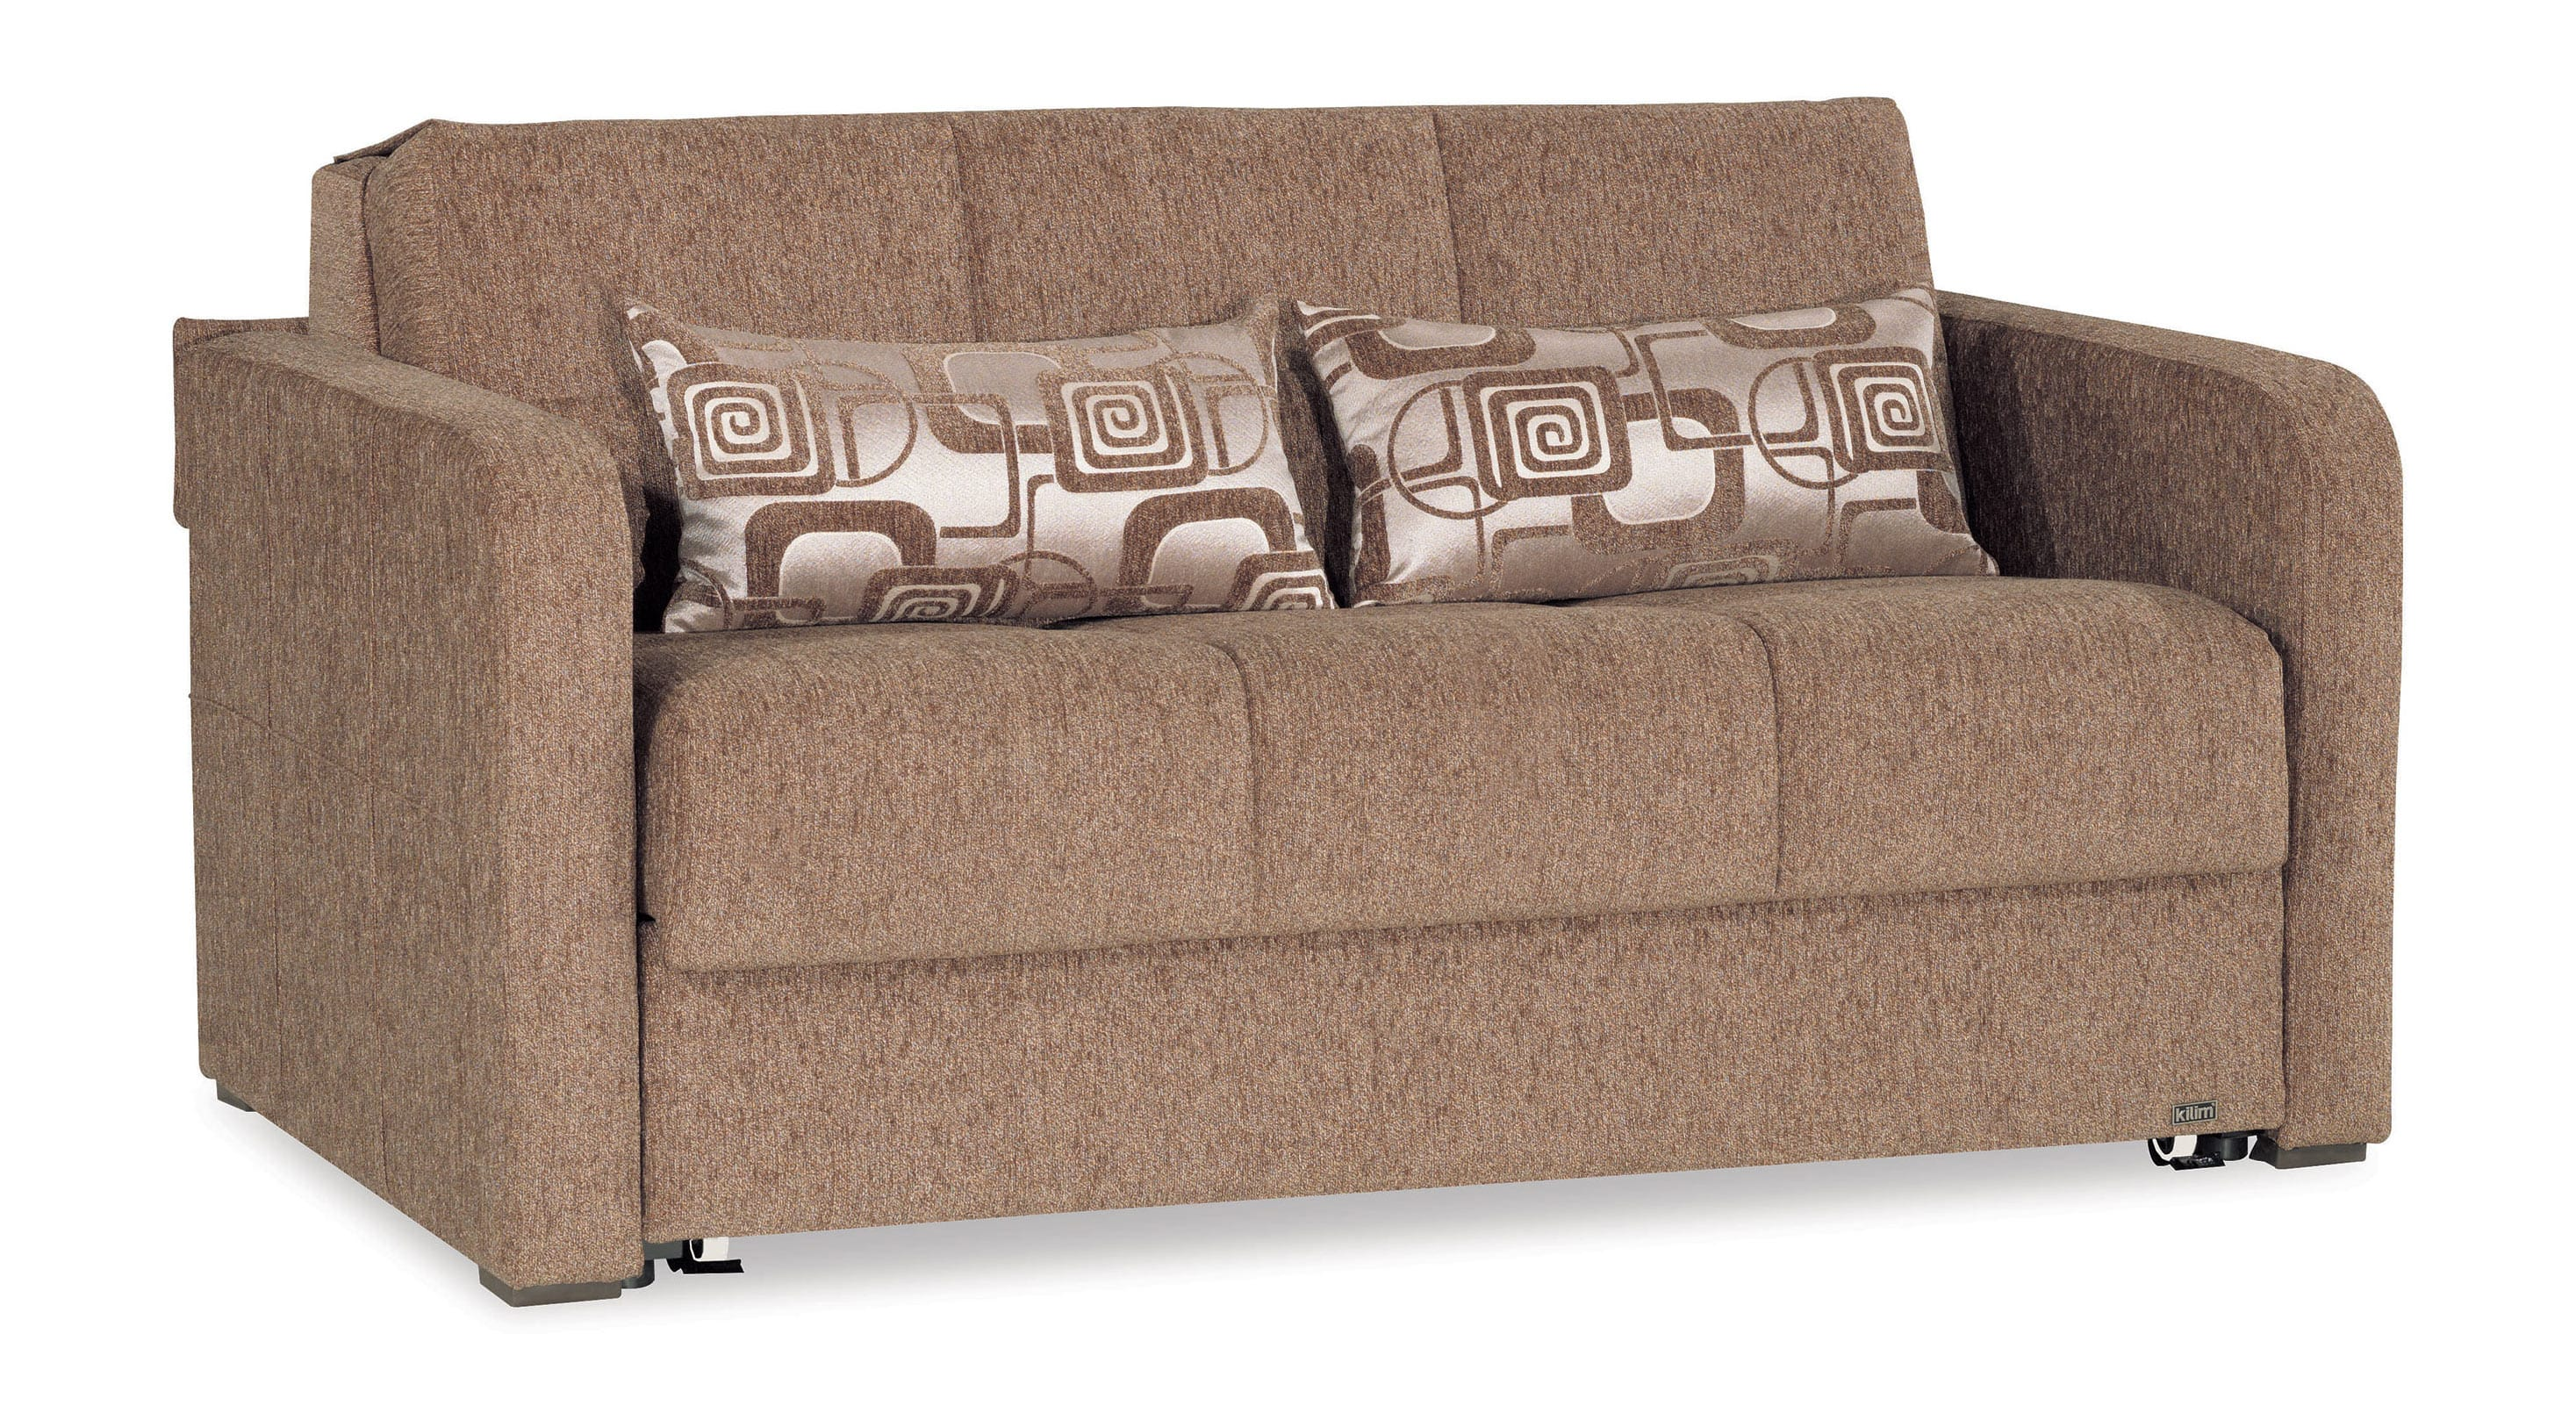 Ferra Fashion Brown Convertible Loveseat by Casamode